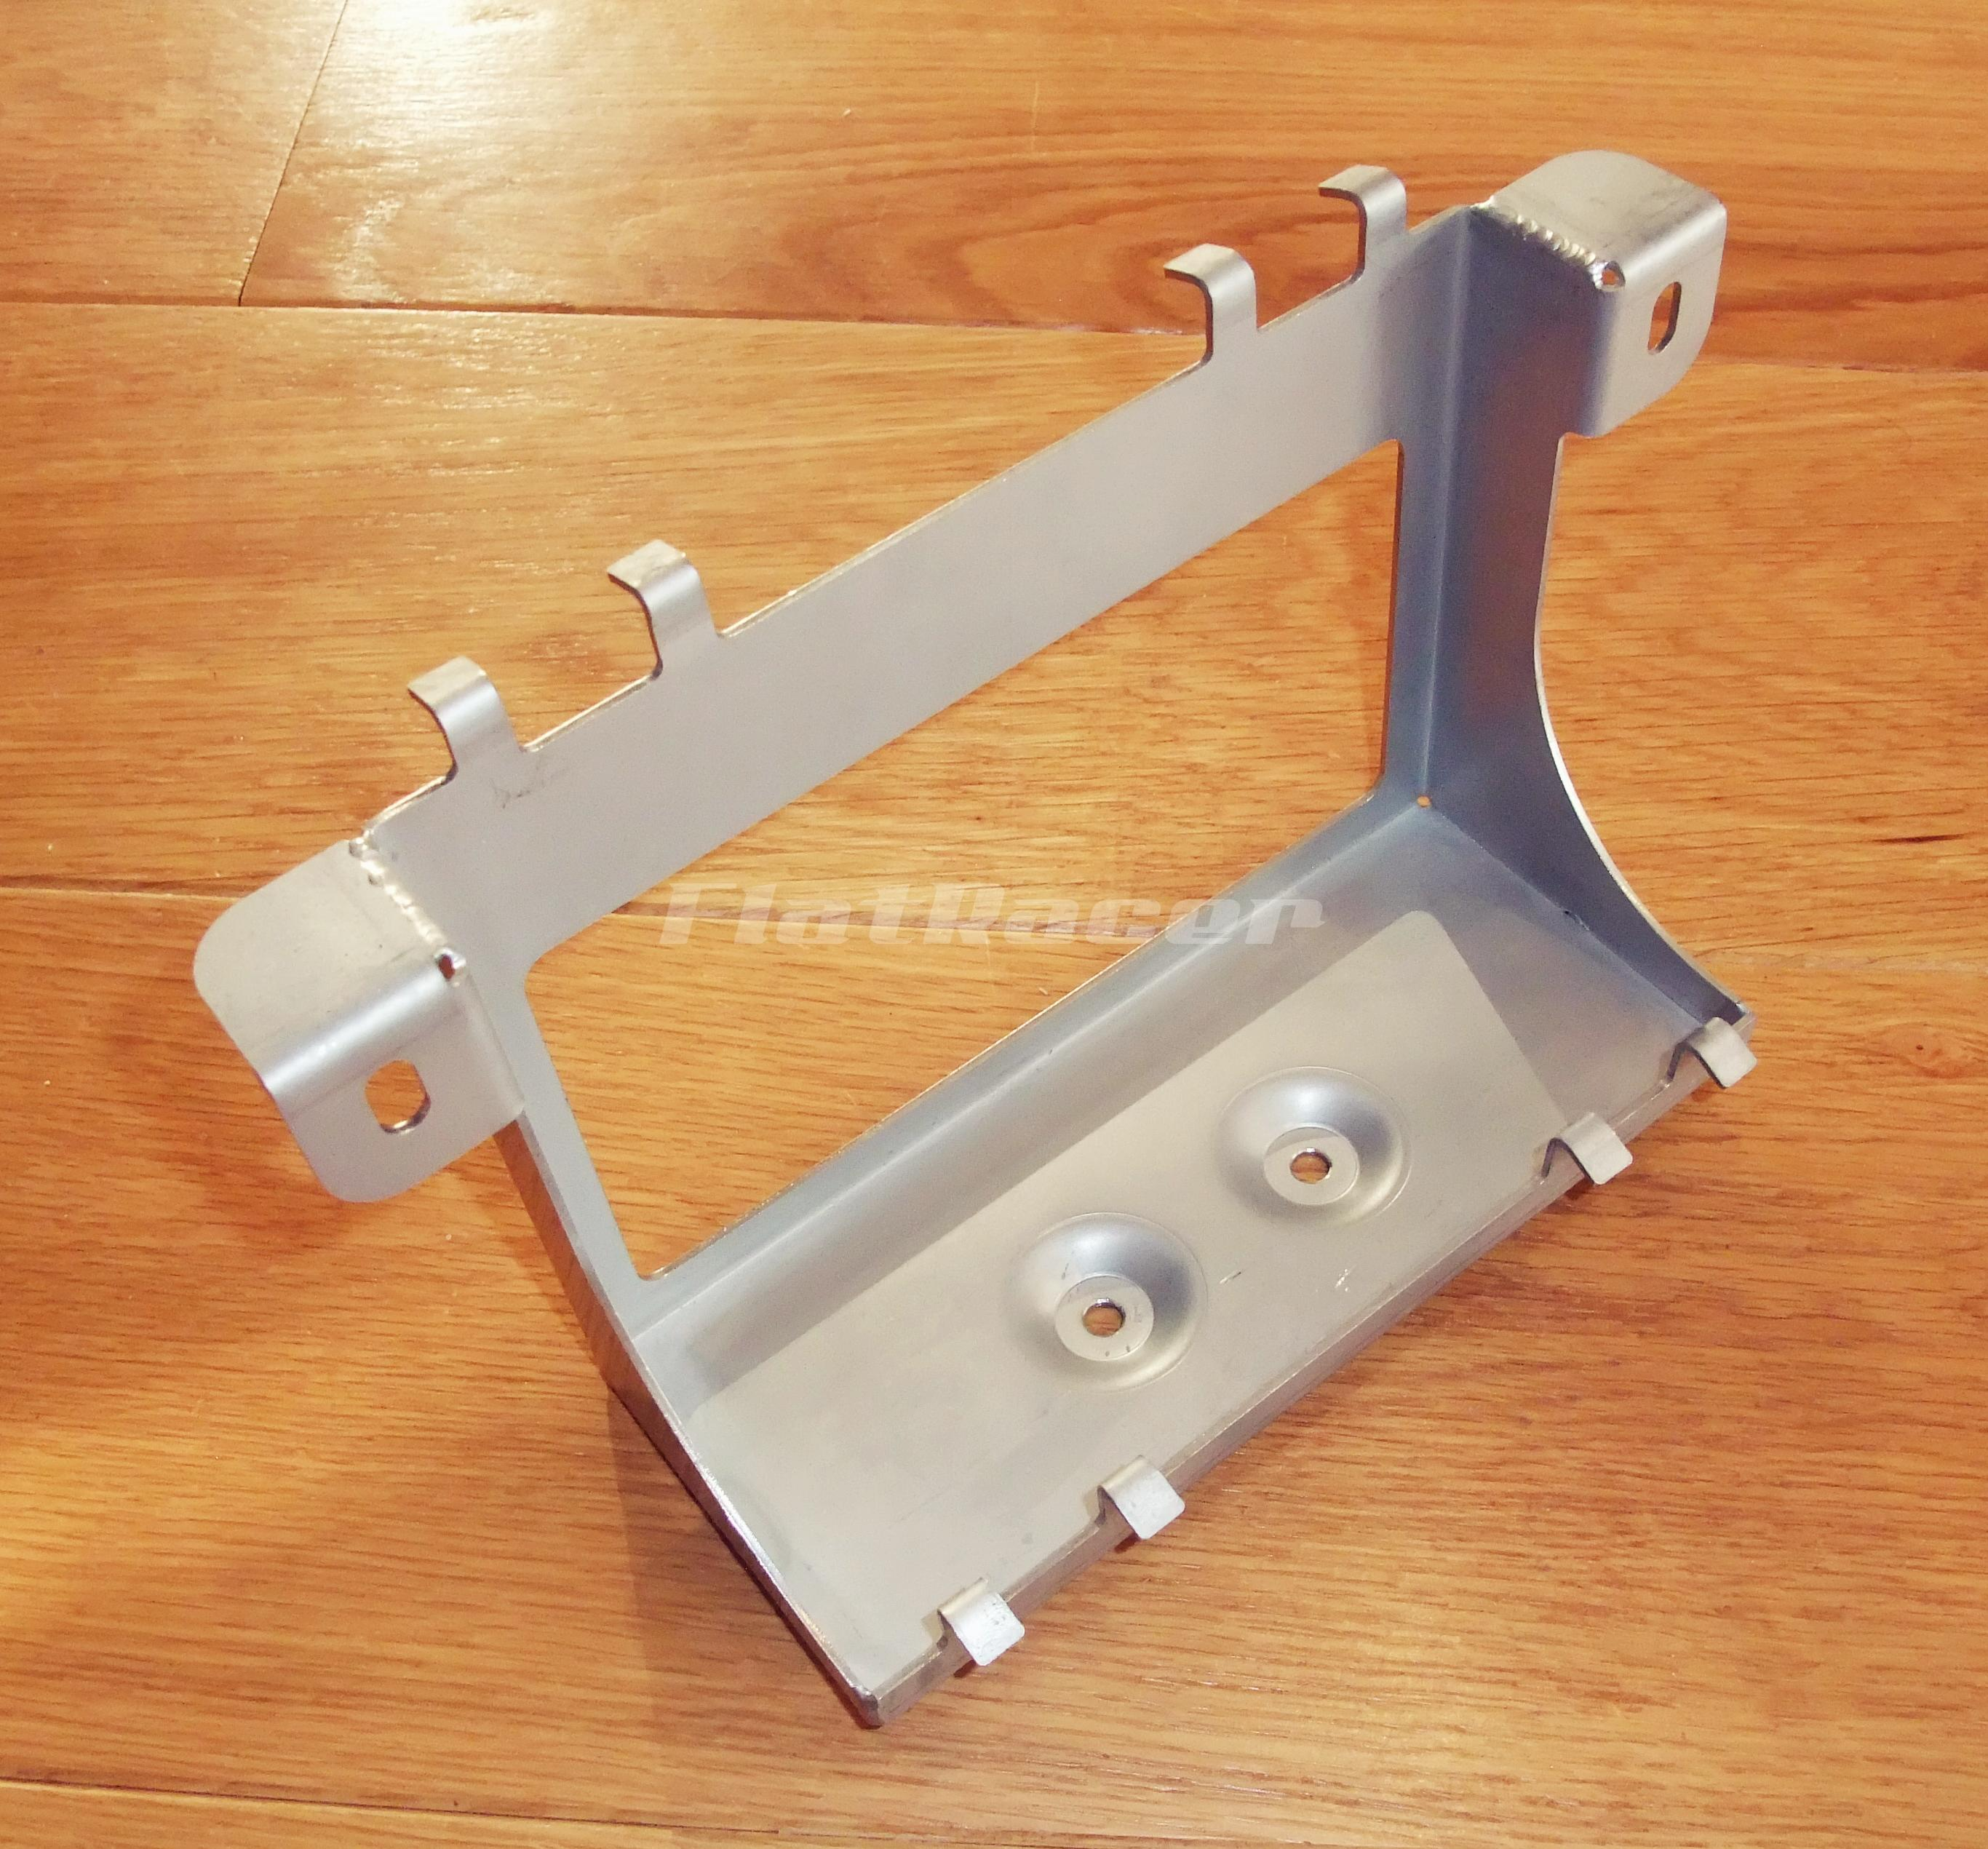 FlatRacer BMW Monolever (post 1985) stainless steel battery tray